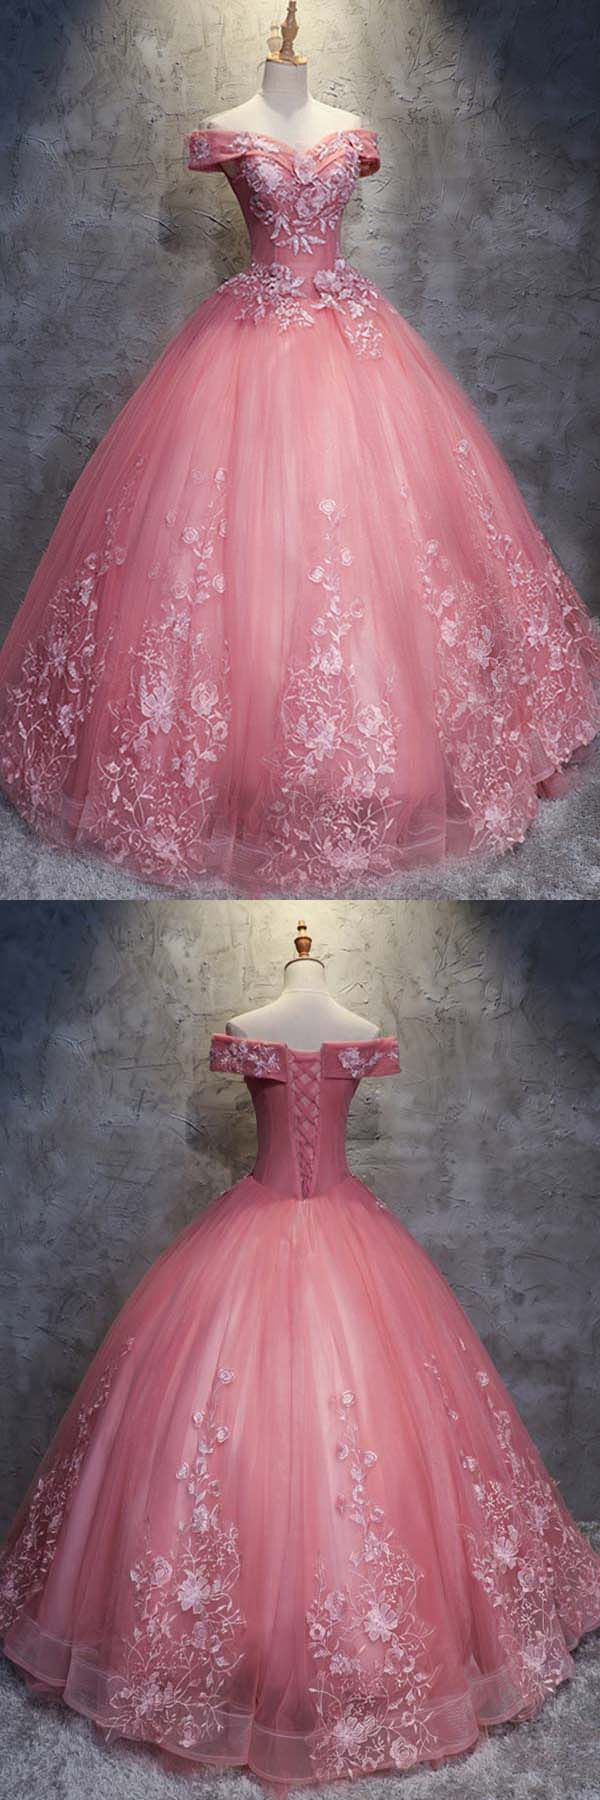 Ballkleid Off-the-Schulter Tüll Brautkleid mit Applikationen WD196 #promdress # ...  #applikationen #ballkleid #brautkleid #promdress #schulter #wd196 #tulleballgown